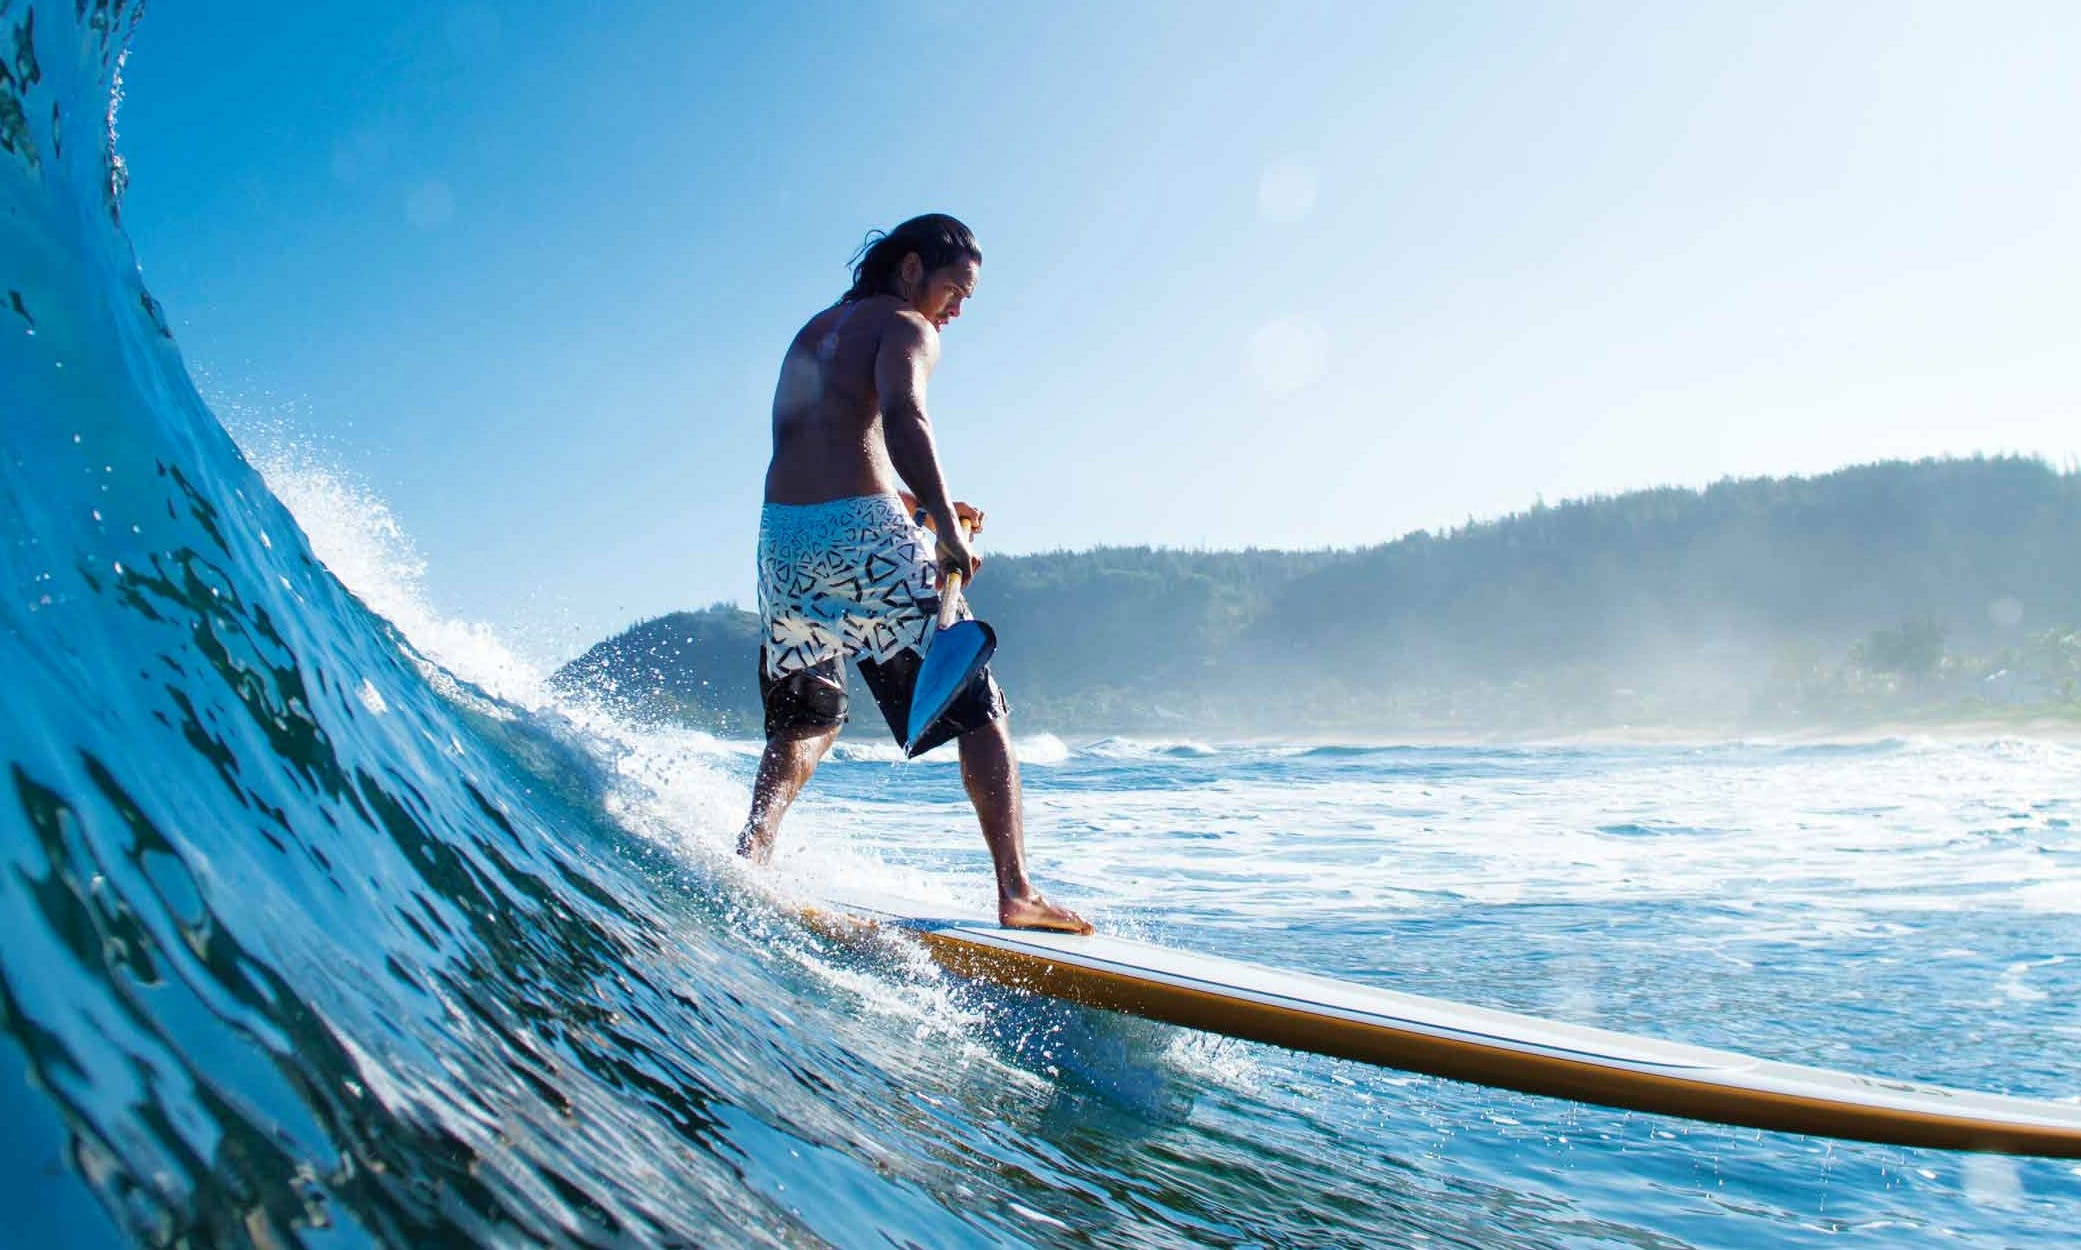 SUP Rental and Courses in Barcelona